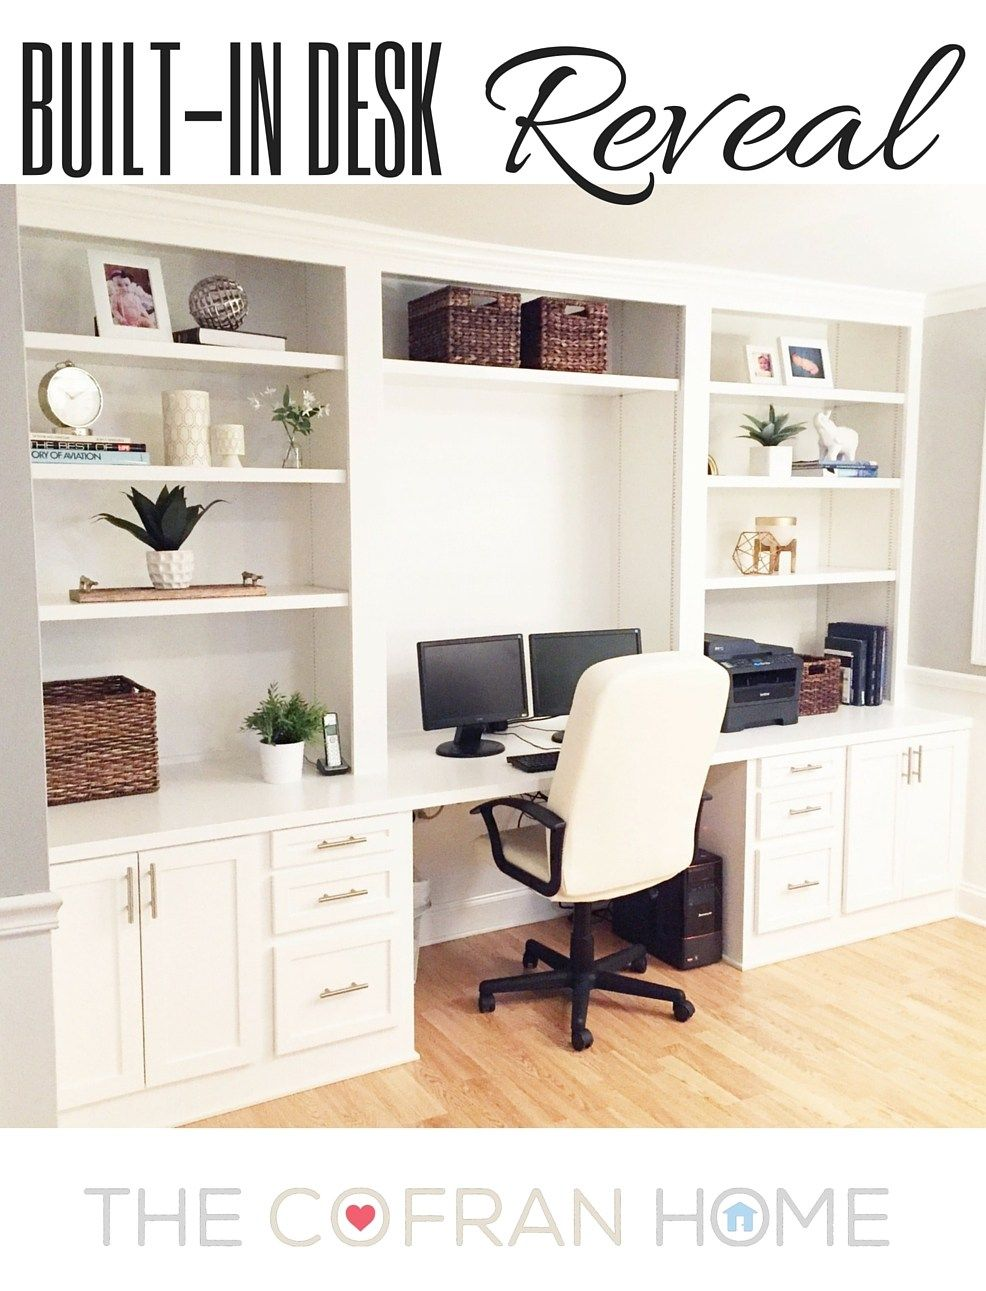 custom home office design stock. Built-In Desk Reveal Custom Home Office Design Stock